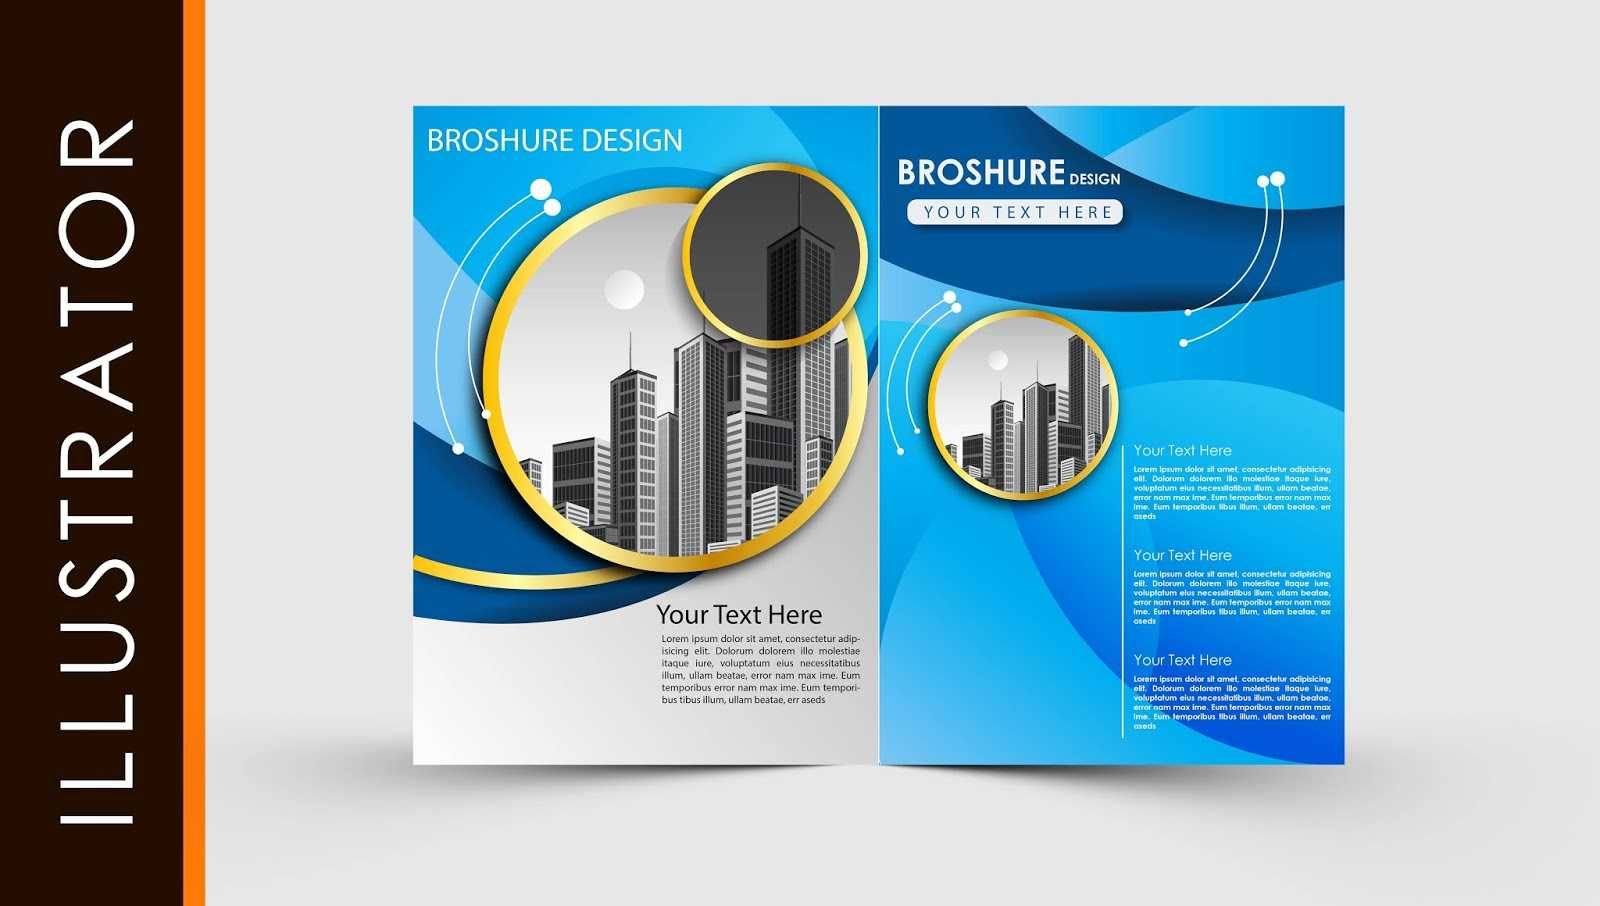 Free Download Adobe Illustrator Template Brochure Two Fold Pertaining To Free Illustrator Brochure Templates Download